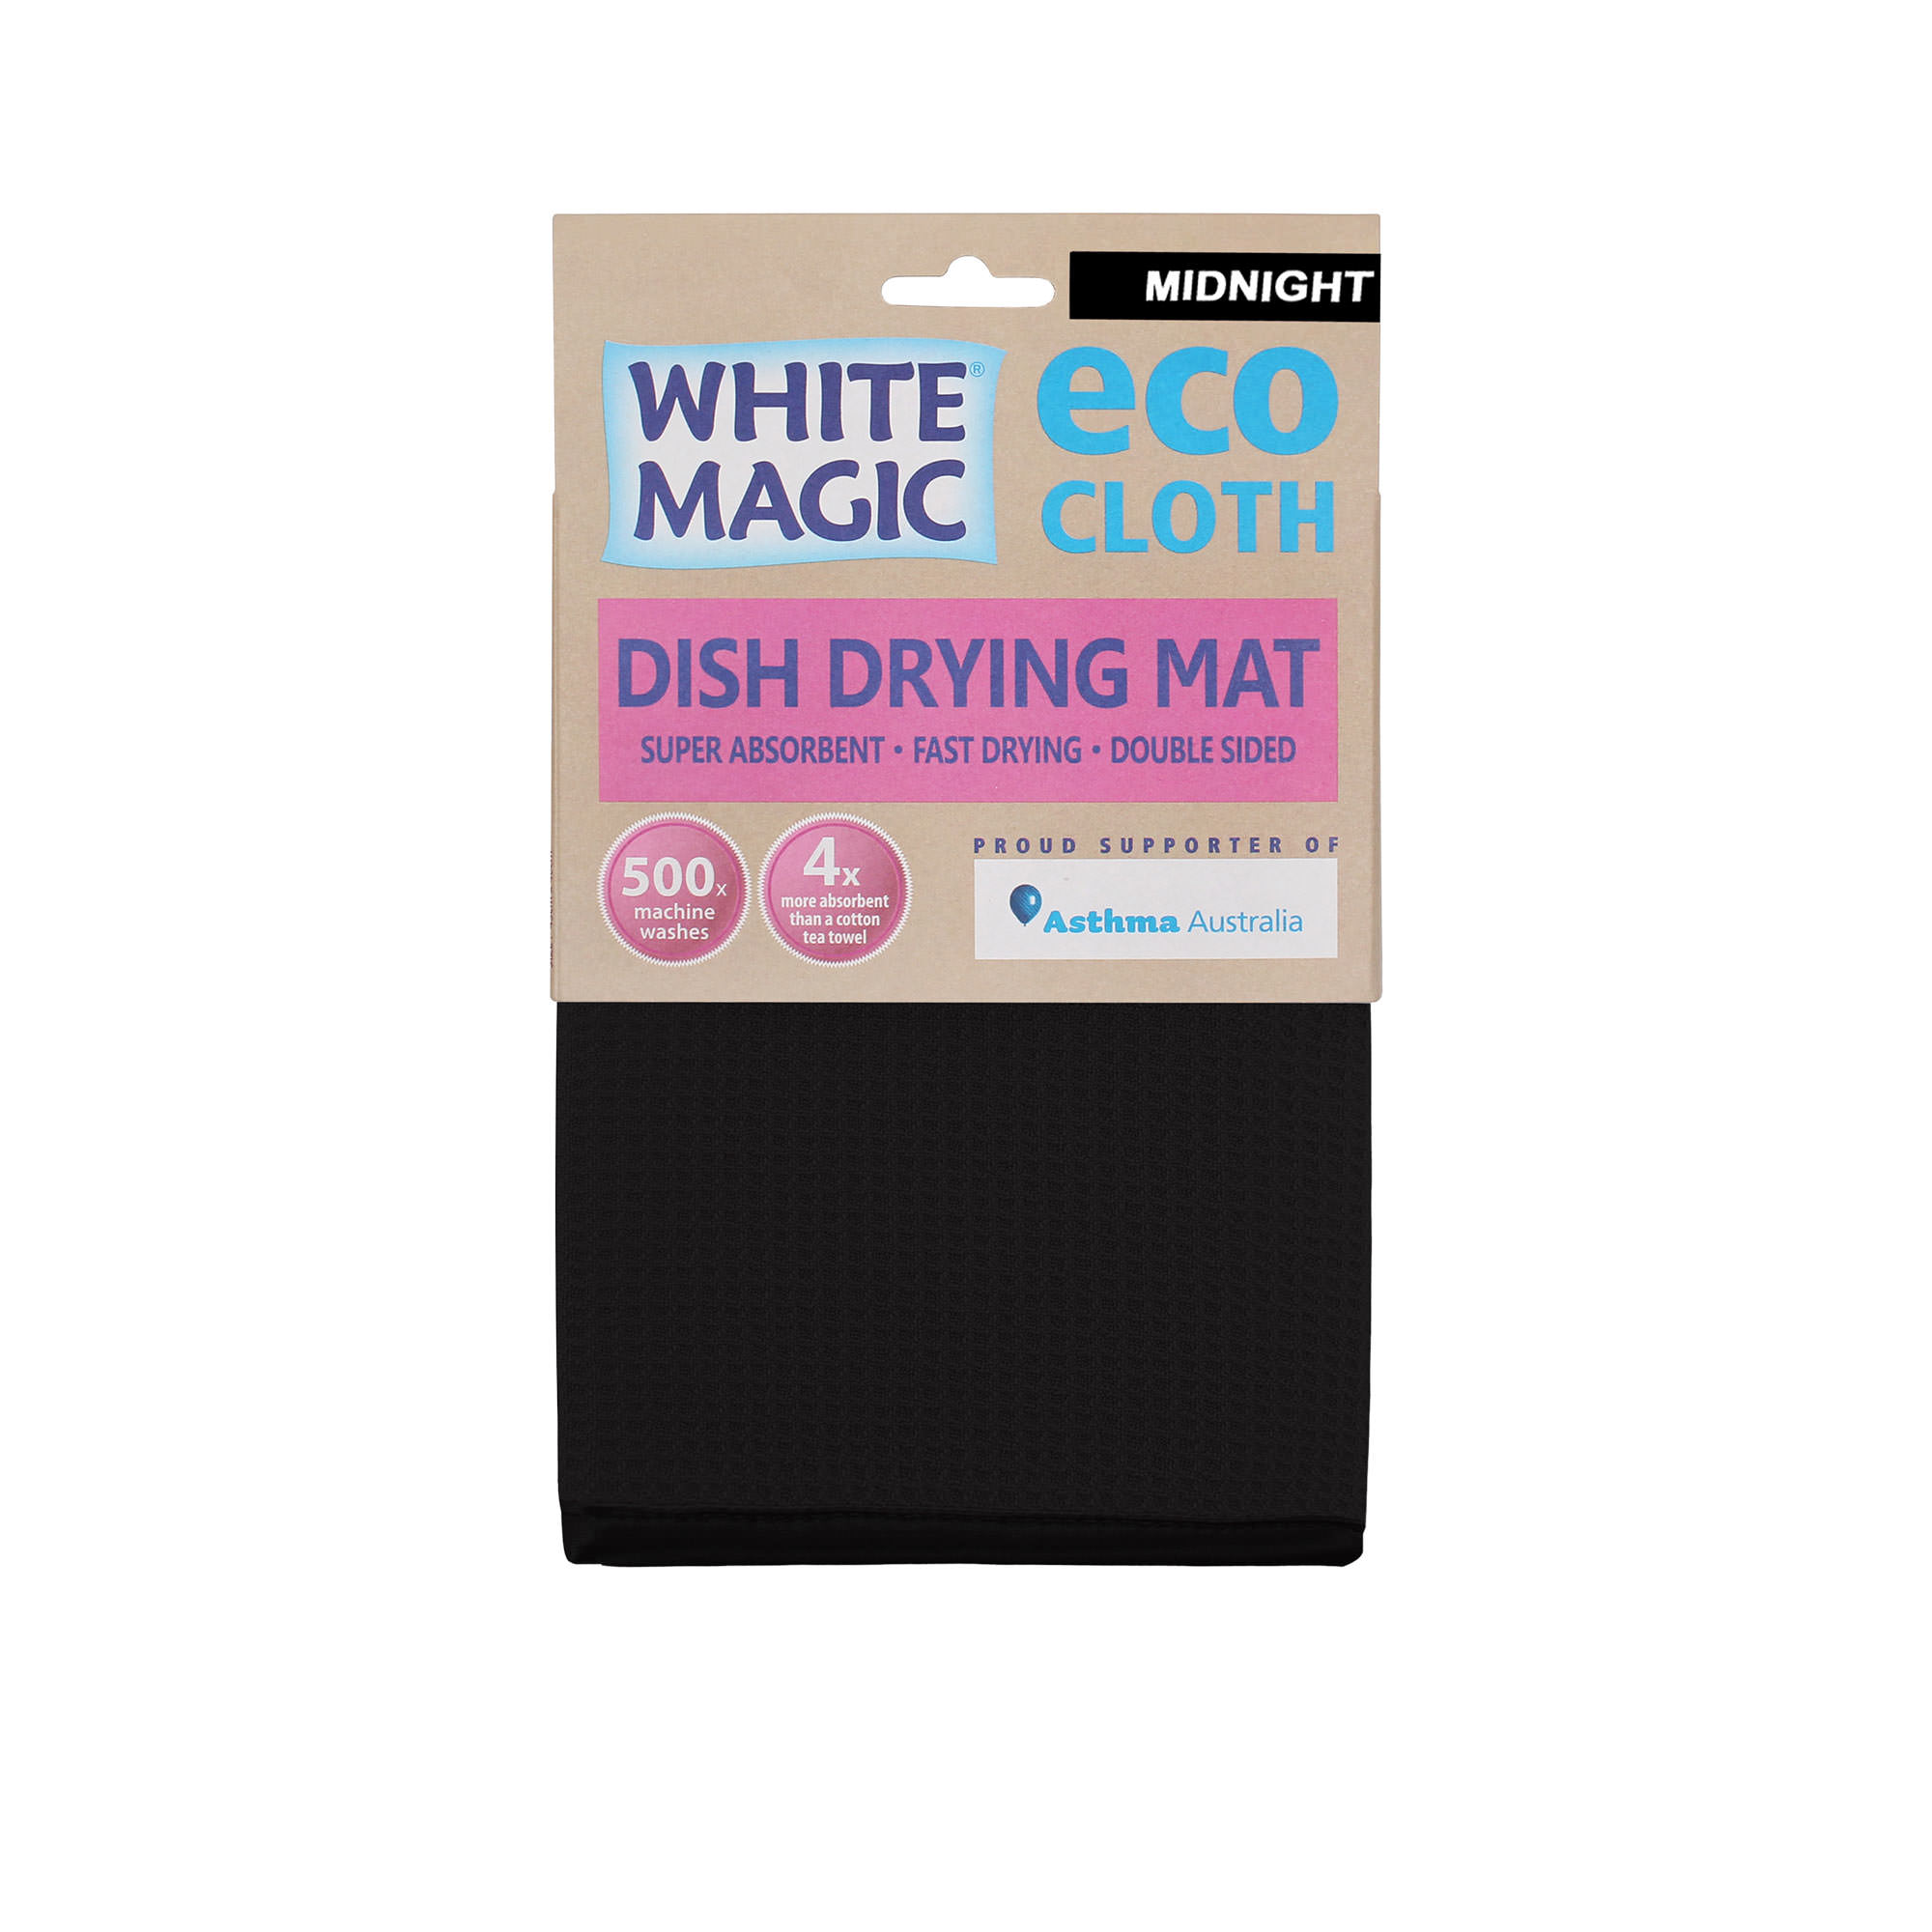 White Magic Eco Cloth Dish Drying Mat Midnight